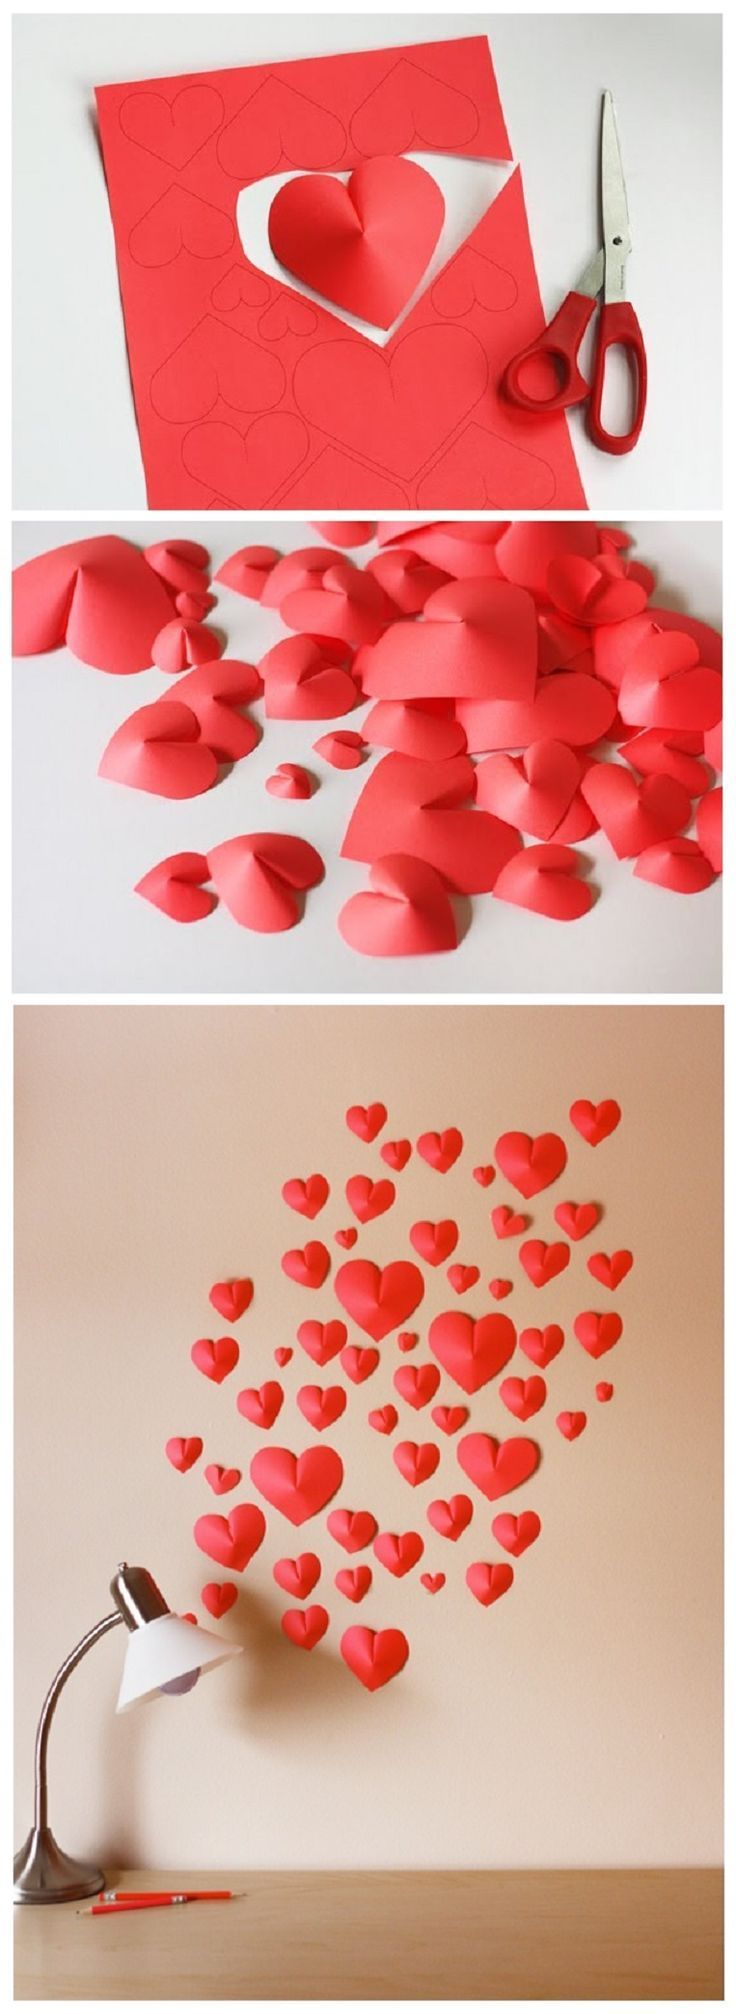 Quick and easy valentine crafts - Find This Pin And More On Valentine Day Craft For Kids Cool Diy Ideas